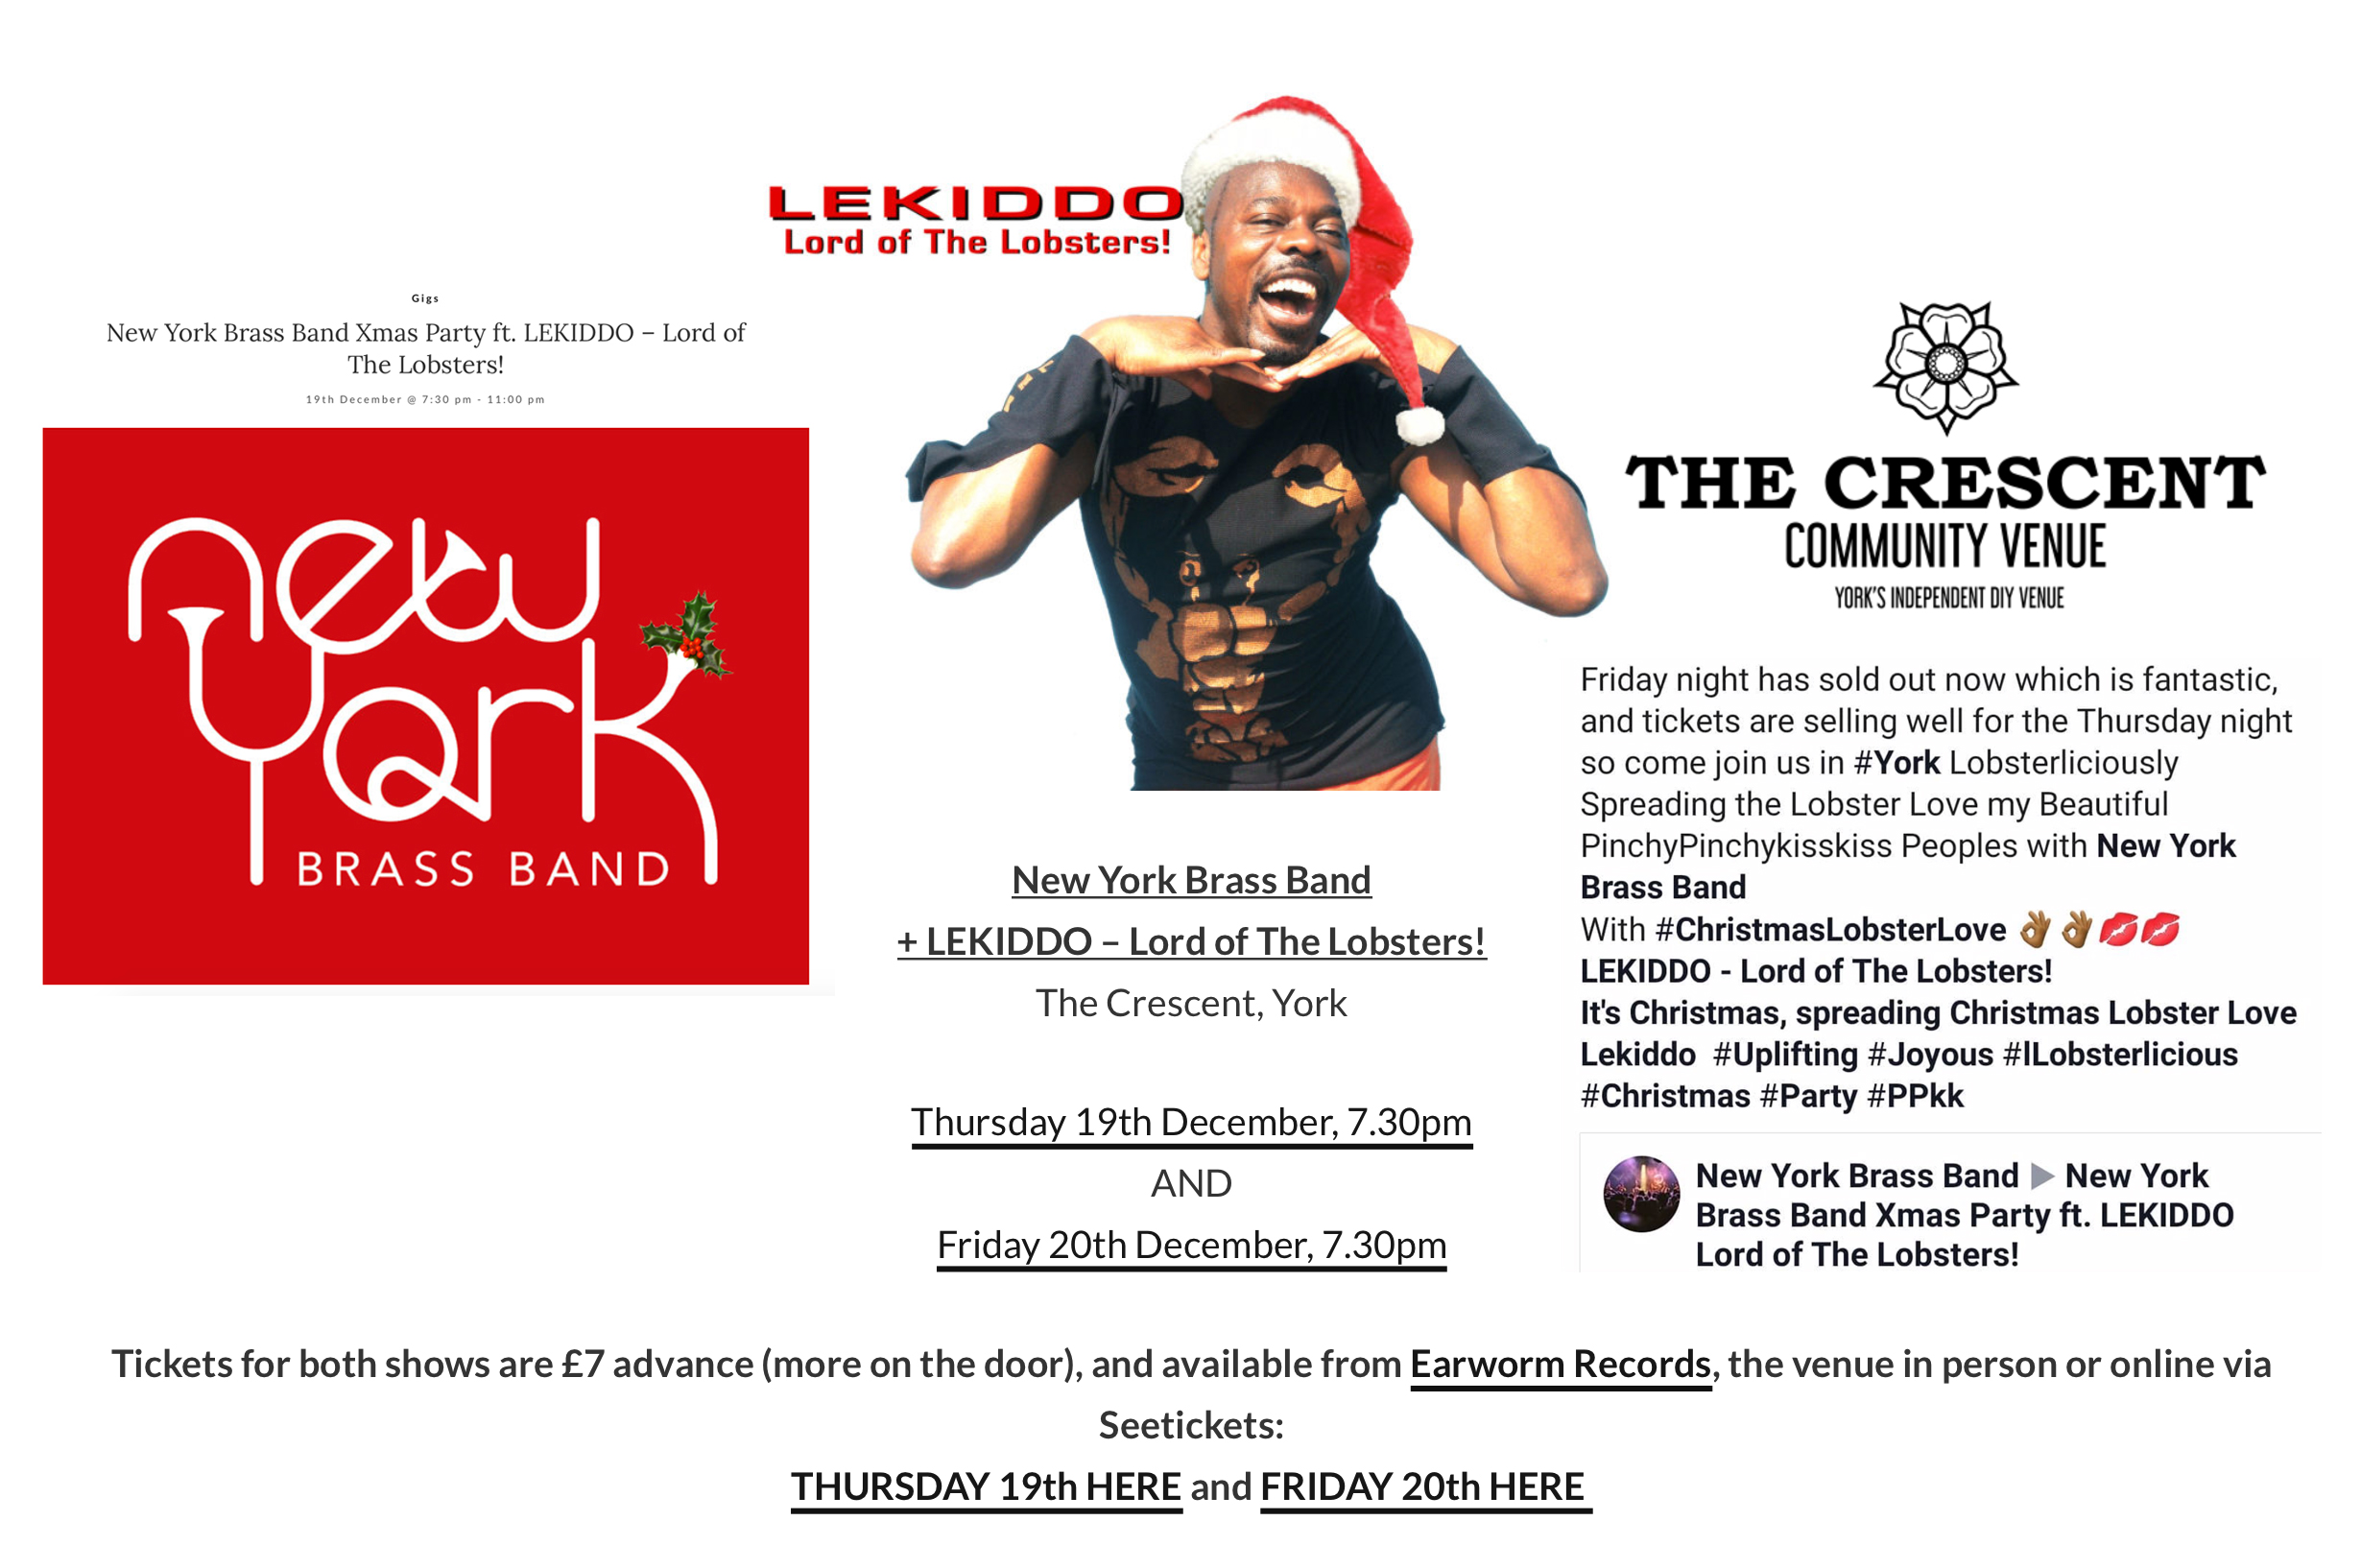 LEKIDDO - Lord of The Lobsters! live at The Cresent York supporting New York Brass Band 19 & 20 Dec 2019 #PinchyPinchykisskiss